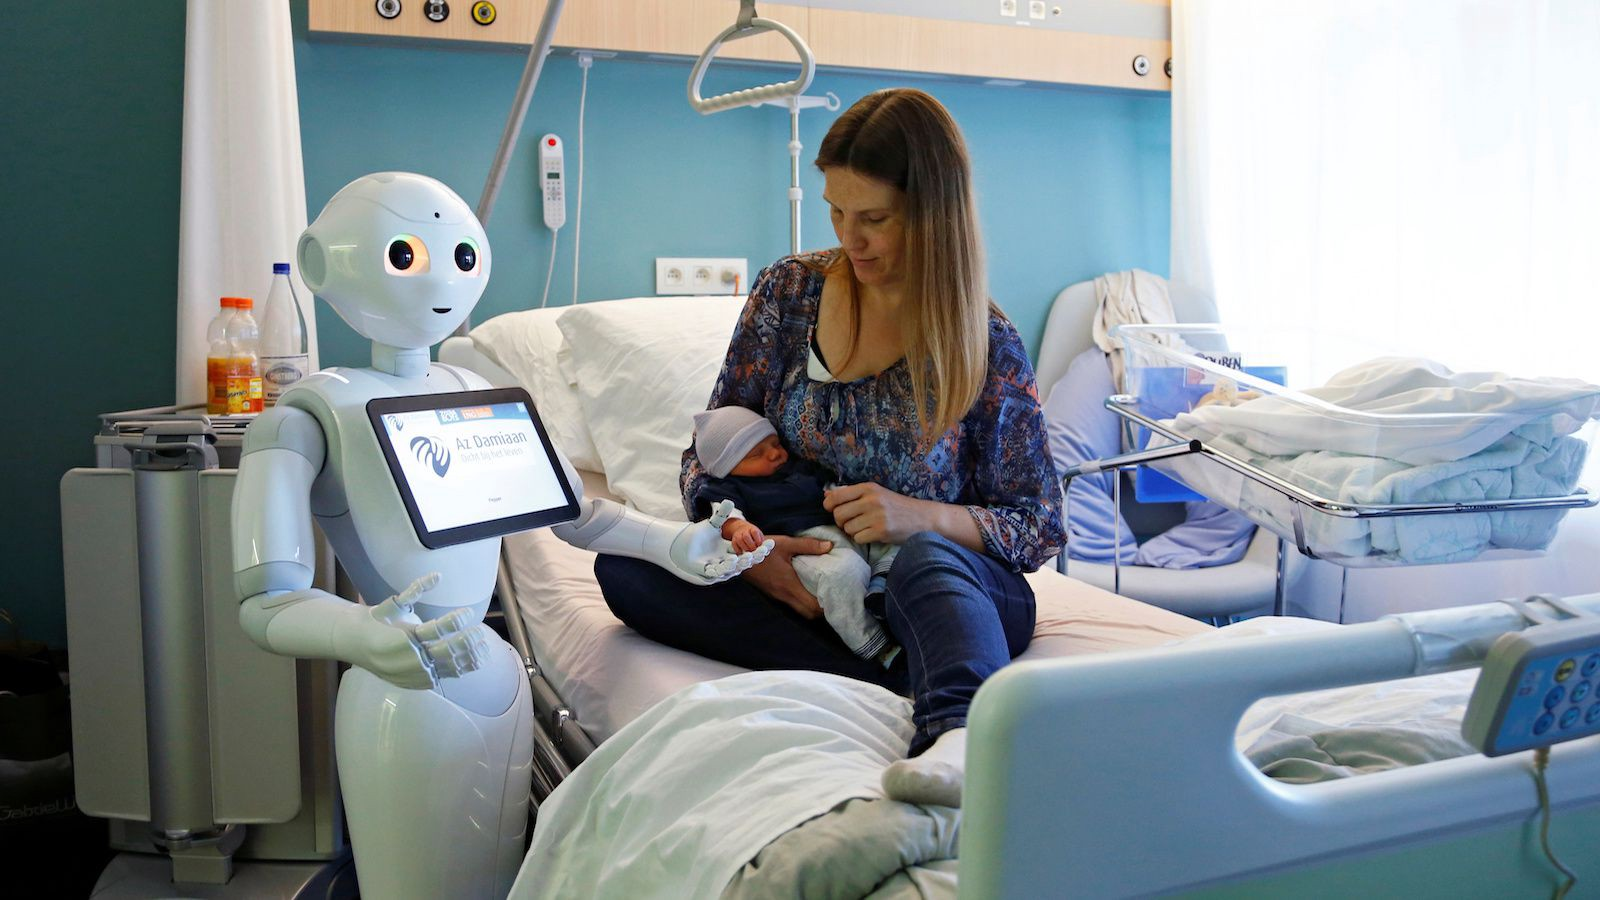 Top Artificial Intelligence Companies in Healthcare to Keep an Eye On